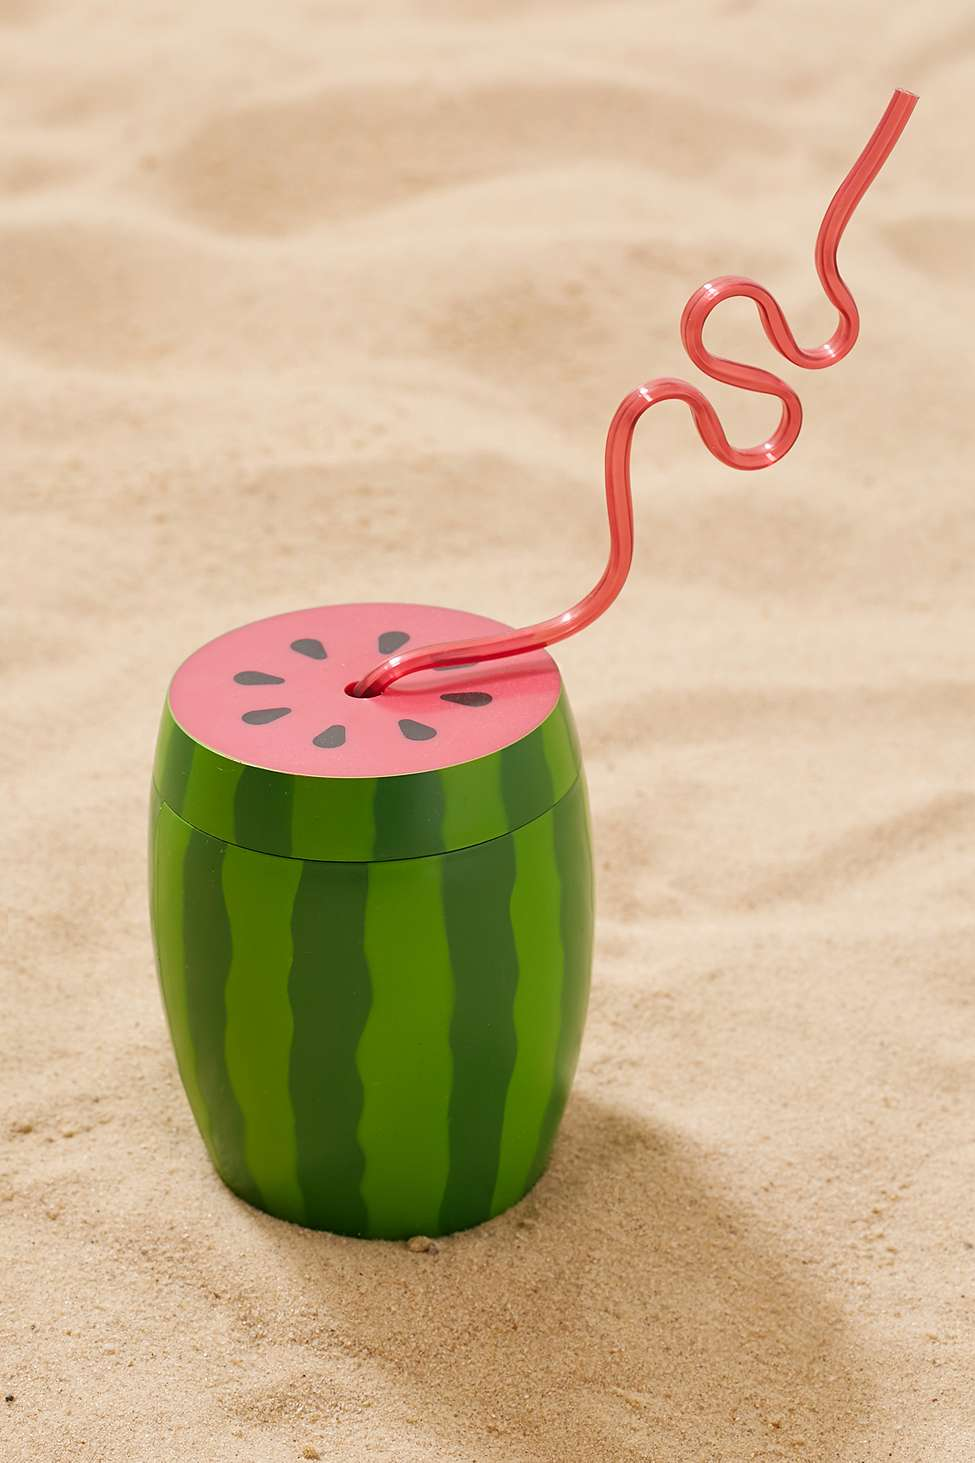 Slide View: 1: Watermelon Sipper